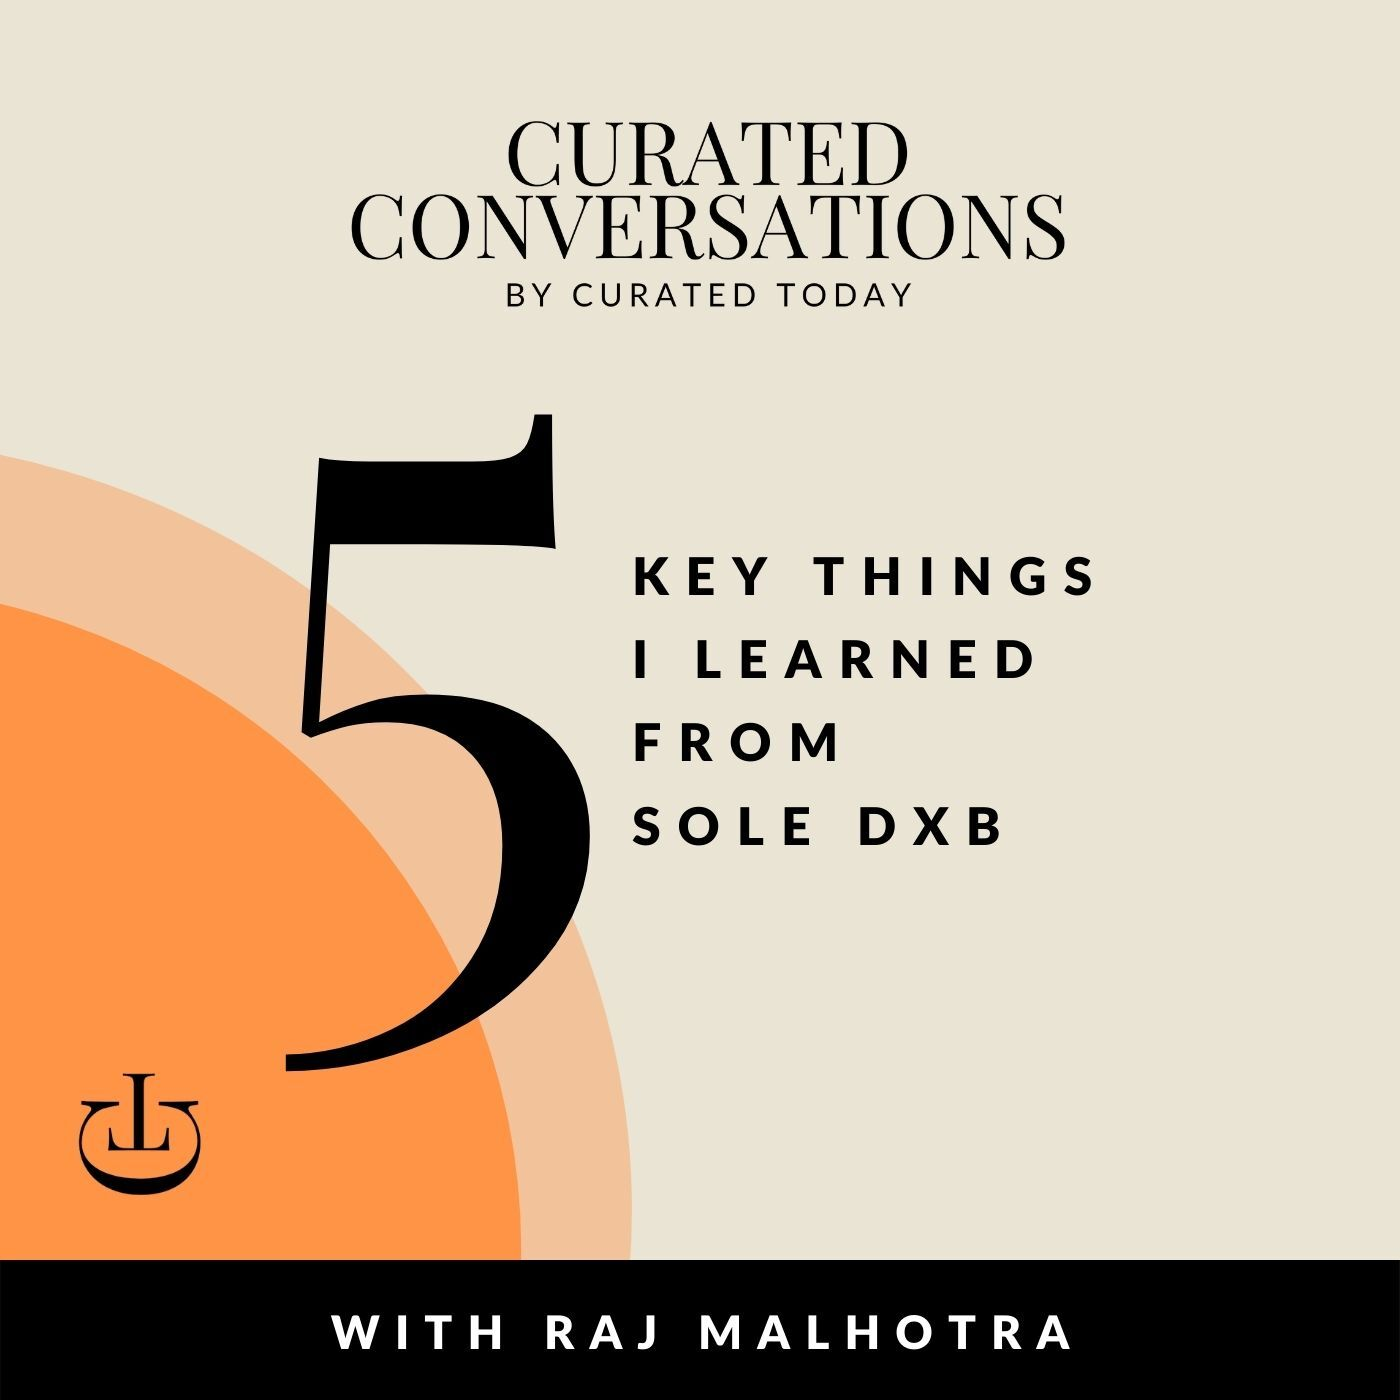 5 Key Things I Learned From Sole DXB - With Sole Partner, Raj Malhotra